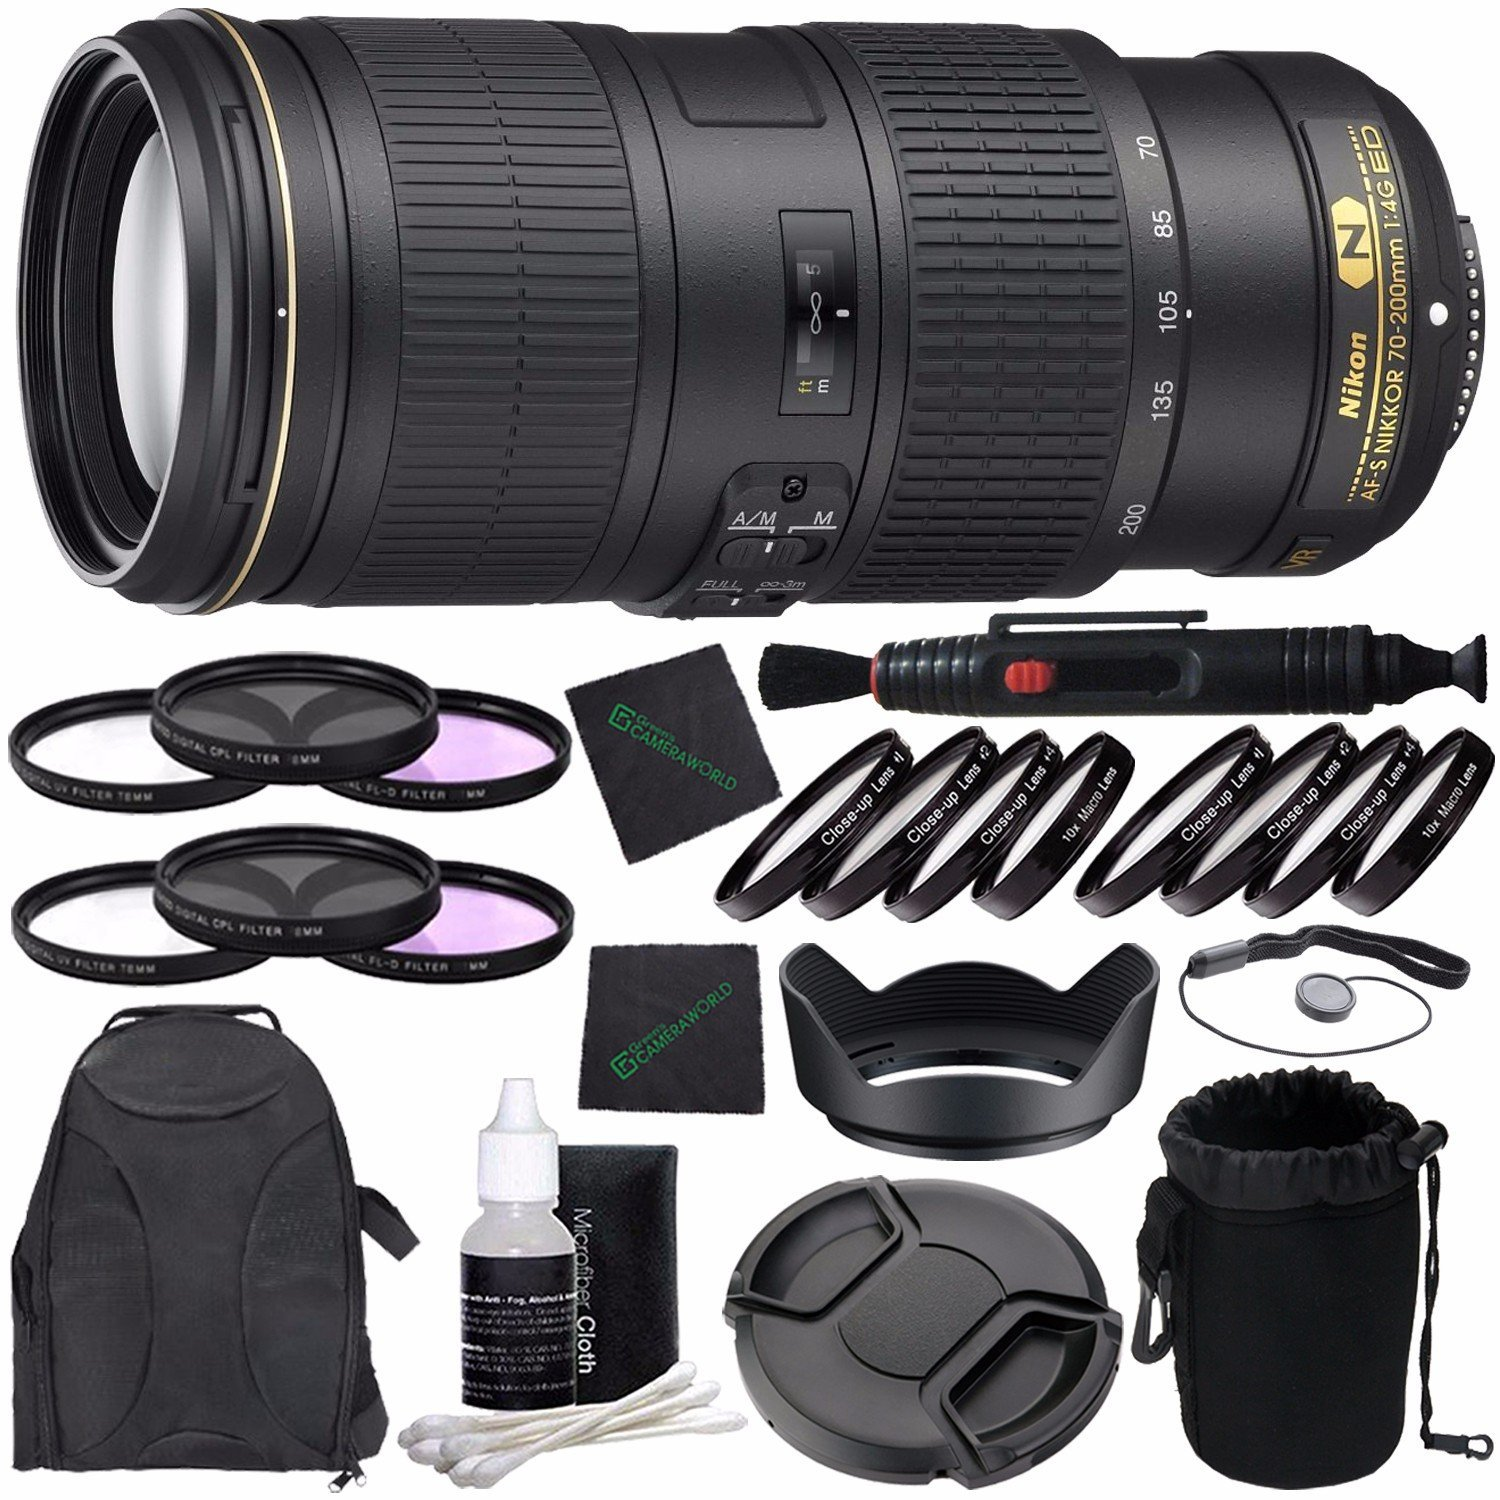 Nikon AF-S NIKKOR 70-200mm f/4G ED VR Lens + 67mm 3 Piece Filter Set (UV, CPL, FL) + 67mm +1 +2 +4 +10 Close-Up Macro Filter Set with Pouch + LENS CAP 67MM + 67mm Lens Hood + Cloth Bundle